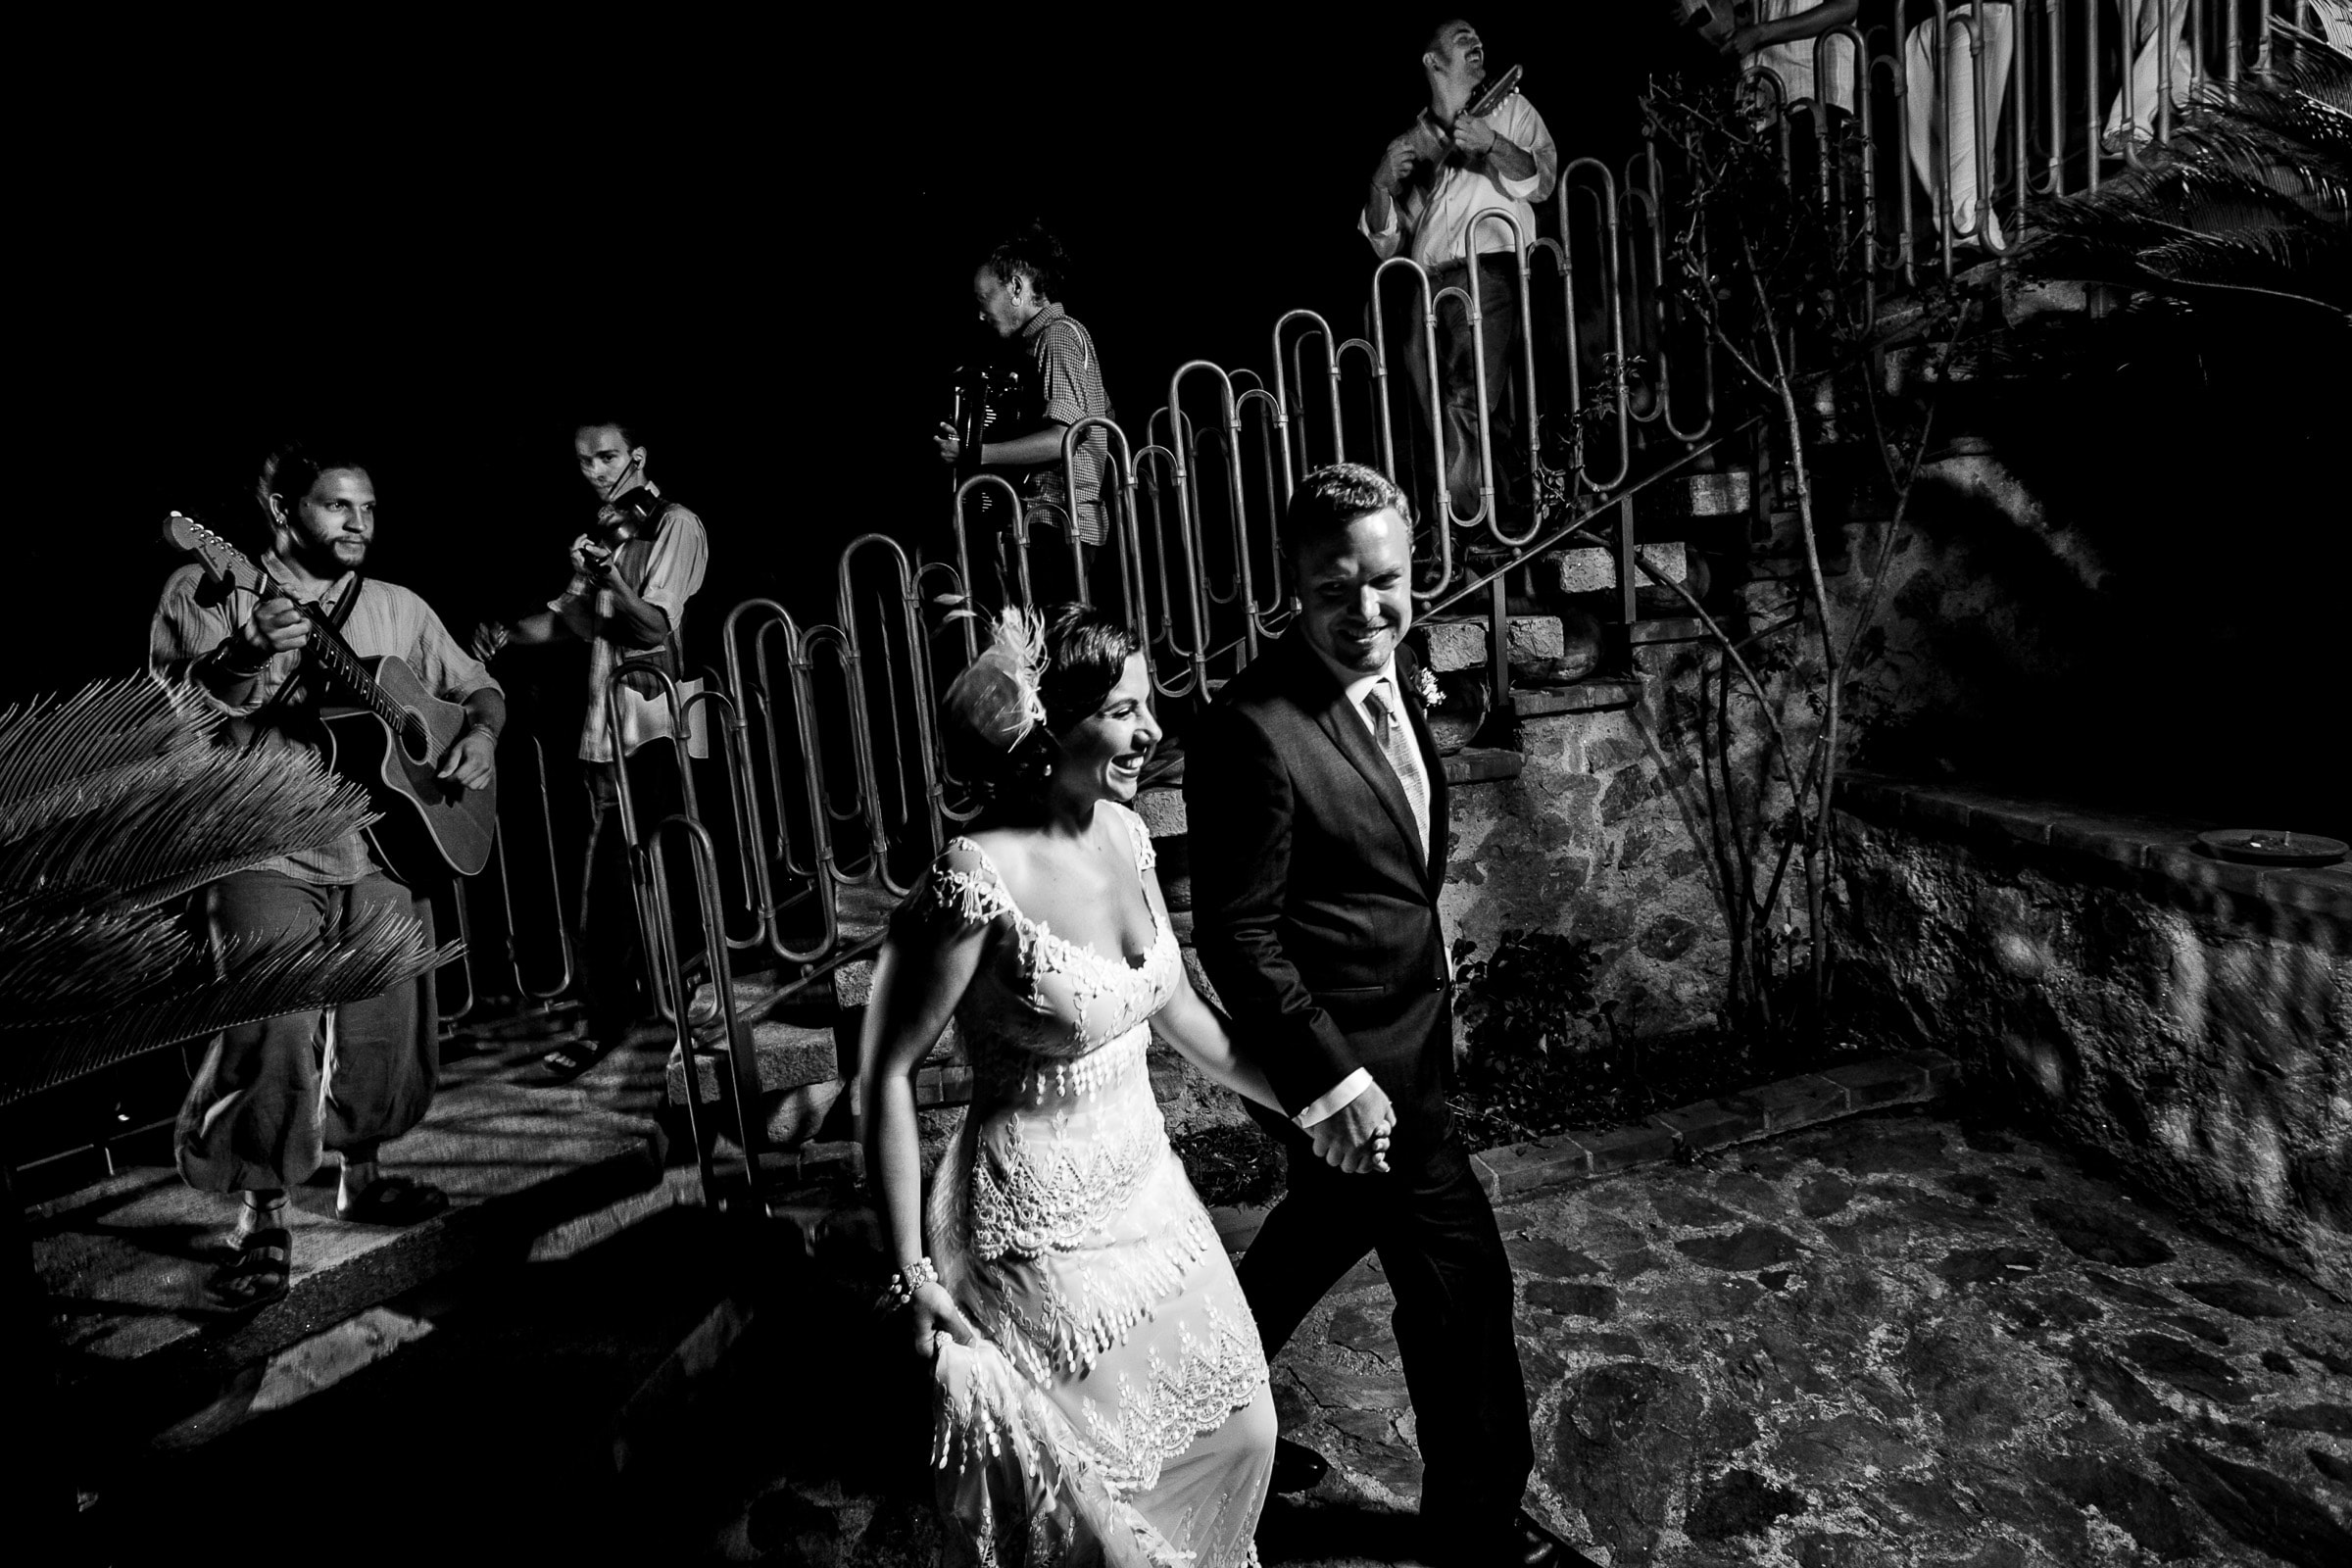 Bride and groom walking into their Sicily wedding reception with musicians playing guitar and singing